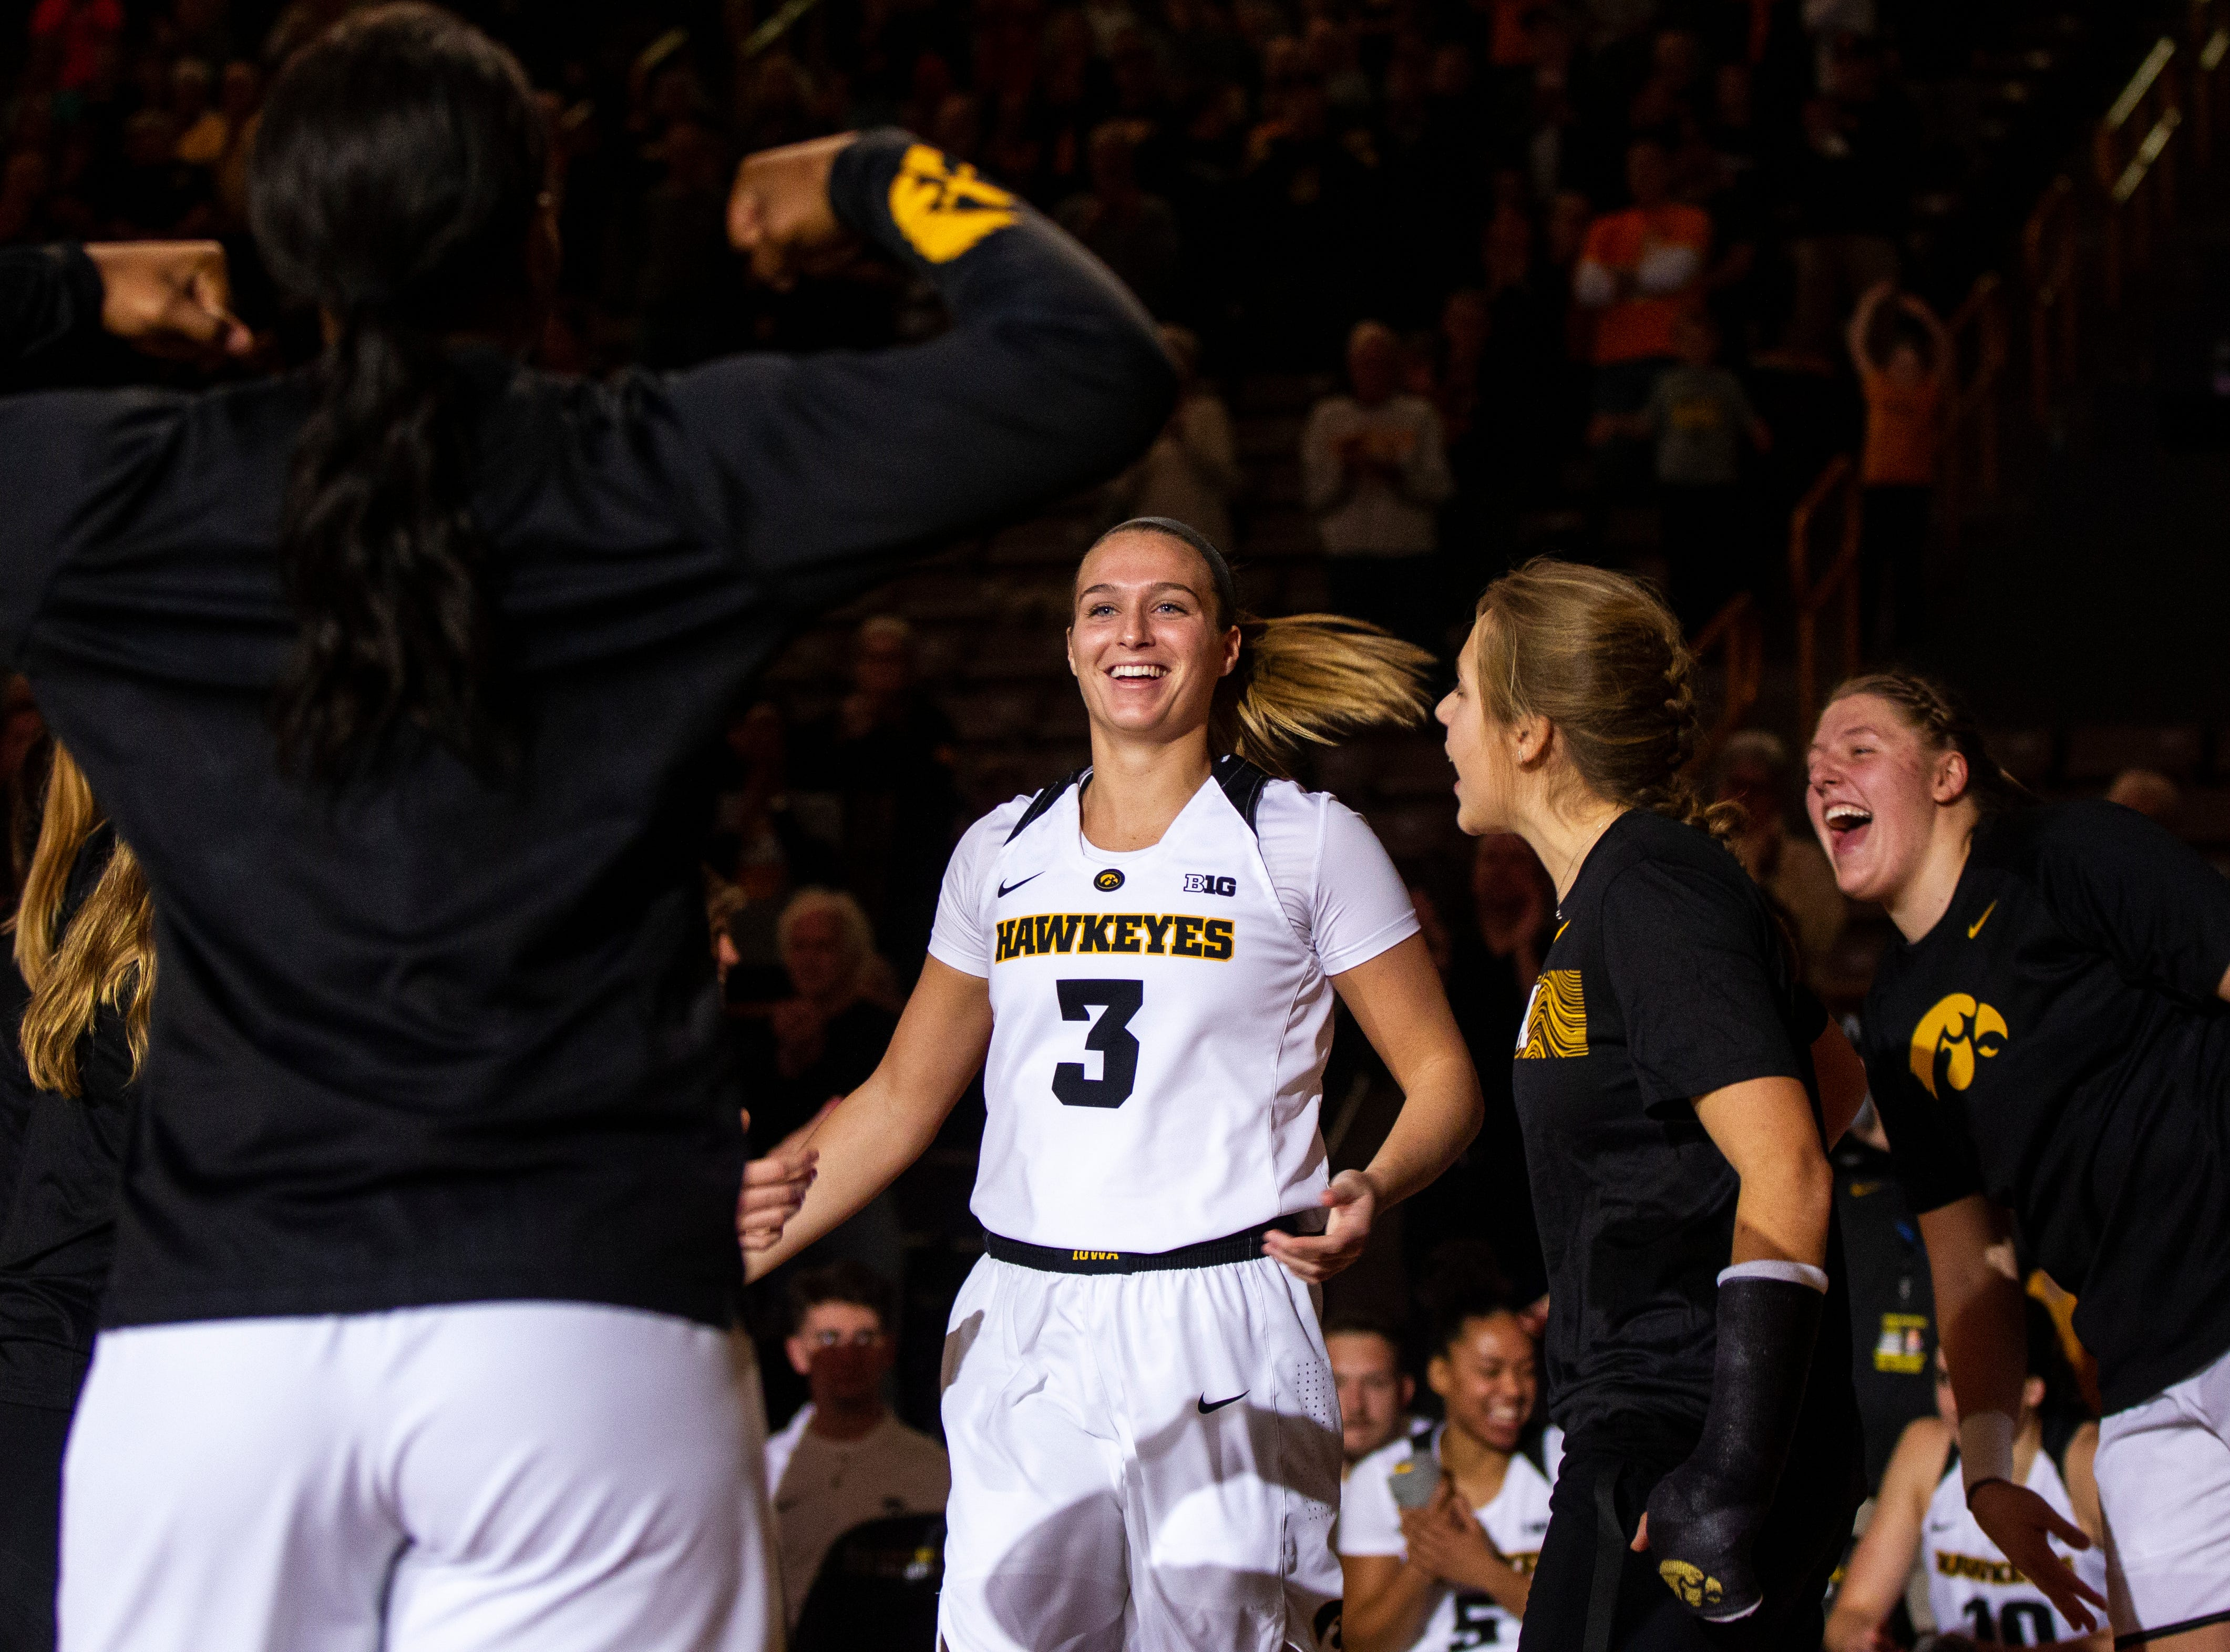 Iowa guard Makenzie Meyer (3) is introduced before an NCAA women's basketball game on Saturday, Nov. 17, 2018, at Carver-Hawkeye Arena in Iowa City.